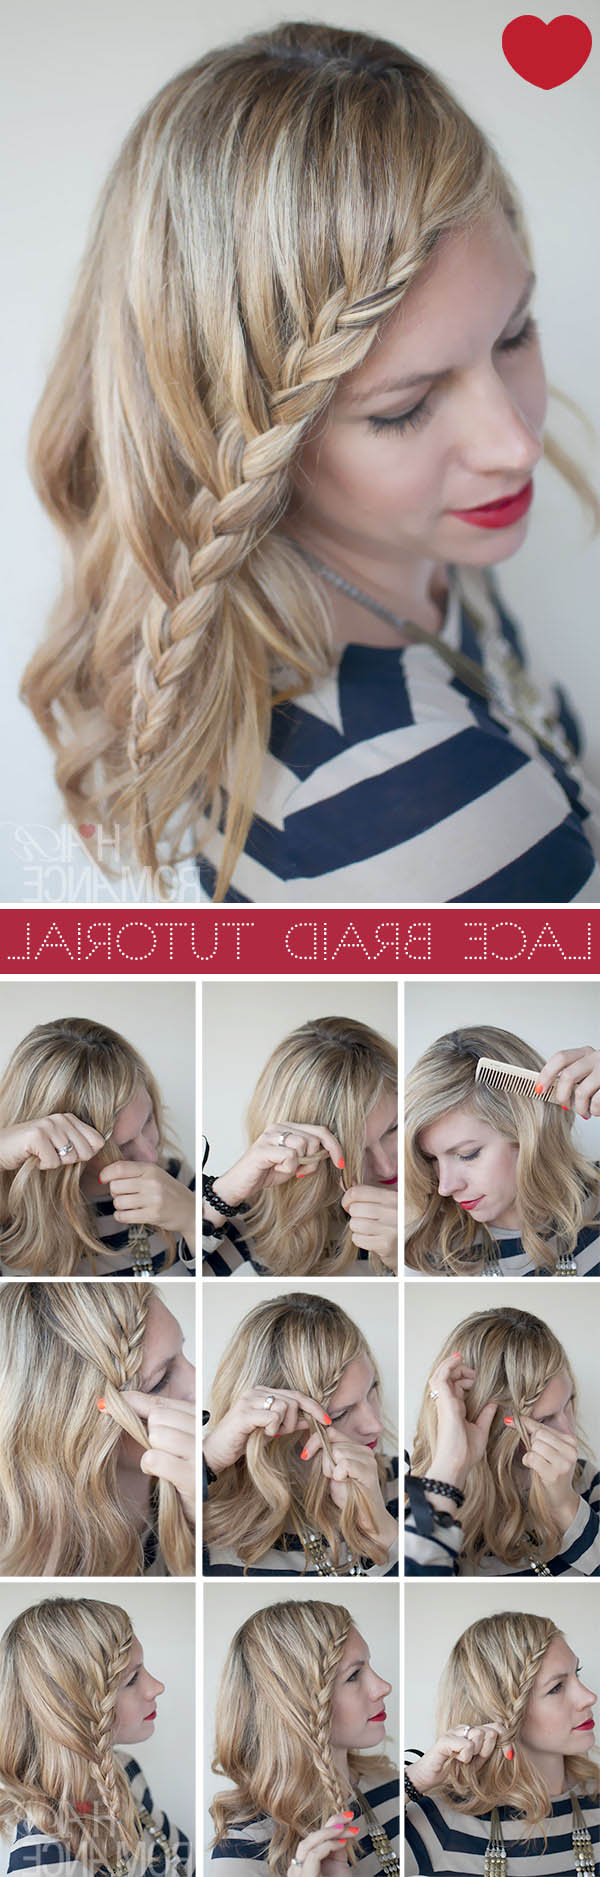 Famous Twisted Lace Braid Hairstyles Inside Lace Braid Hairstyle Tutorial – Hair Romance (View 9 of 20)